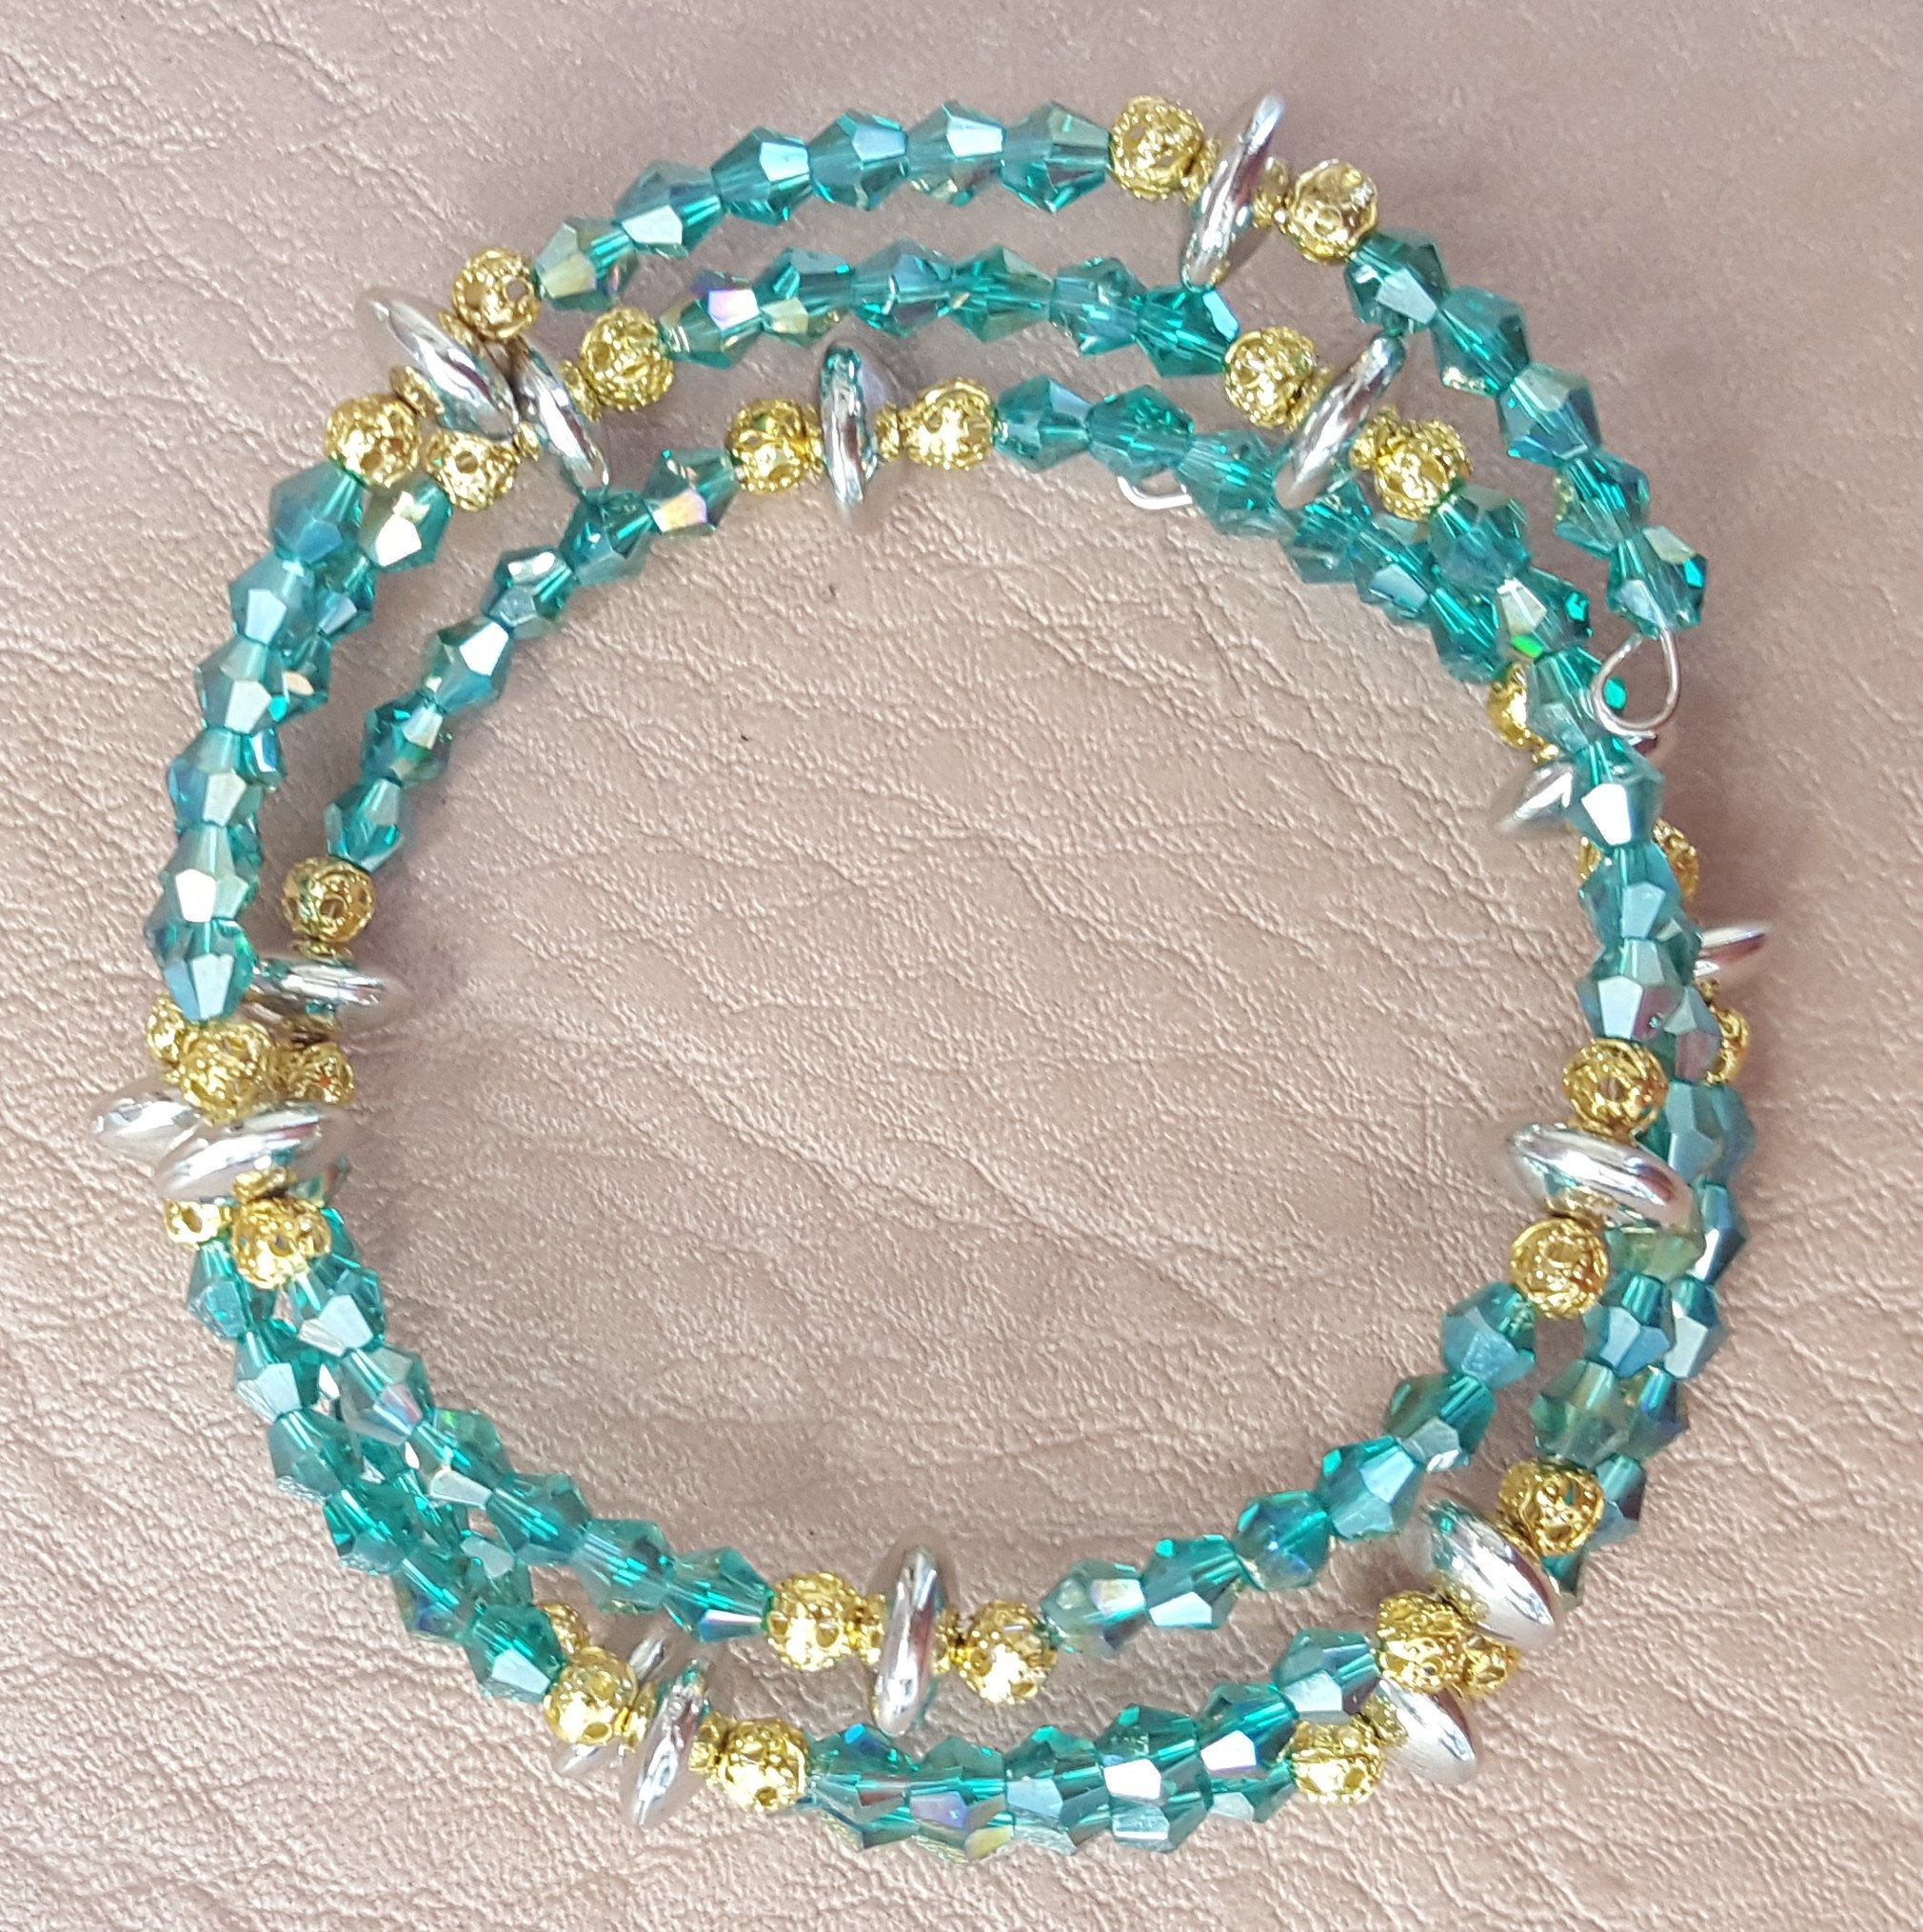 Turquoise, Silver and Gold Memory Wire Stainless Steel Bracelet by KalaaStudio on Etsy